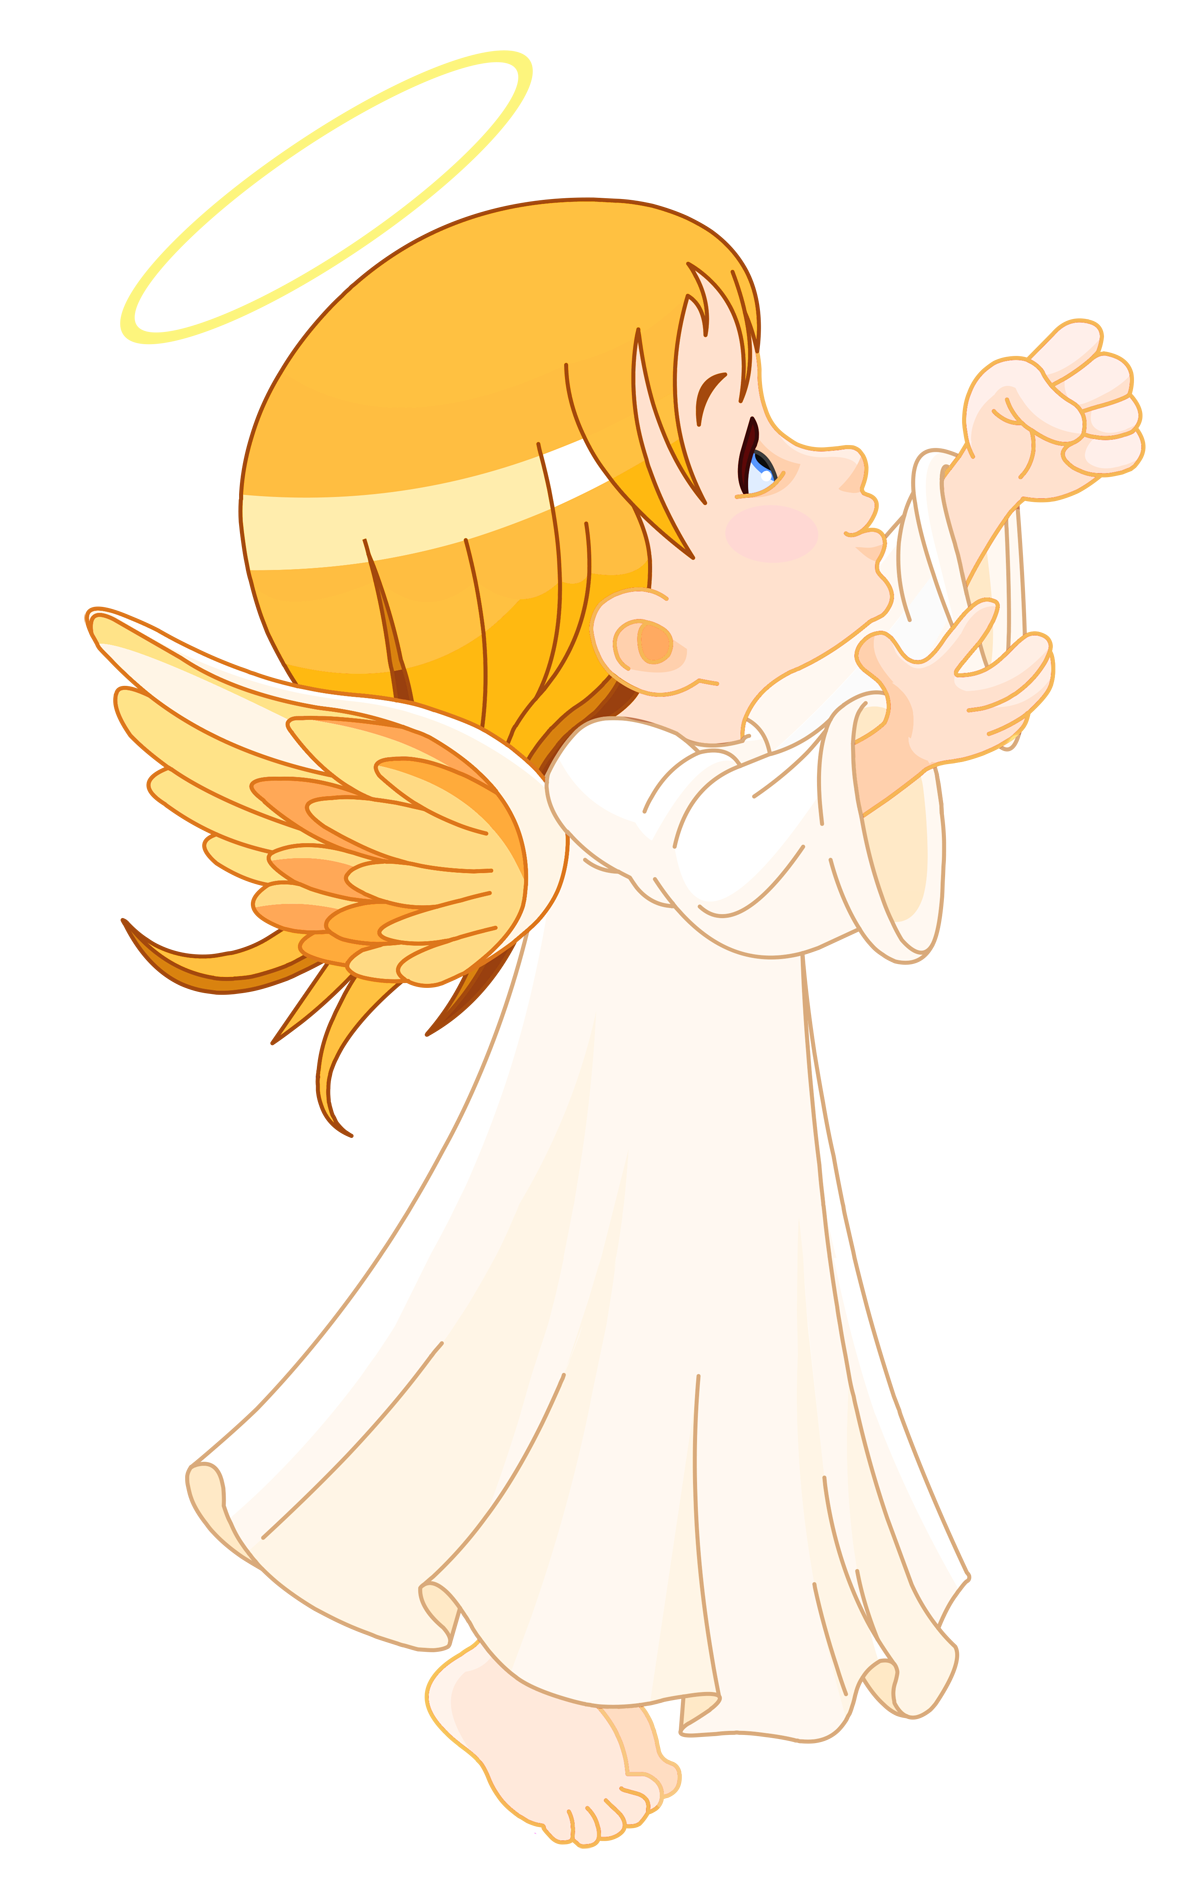 Angel clipart png. It s god kindness